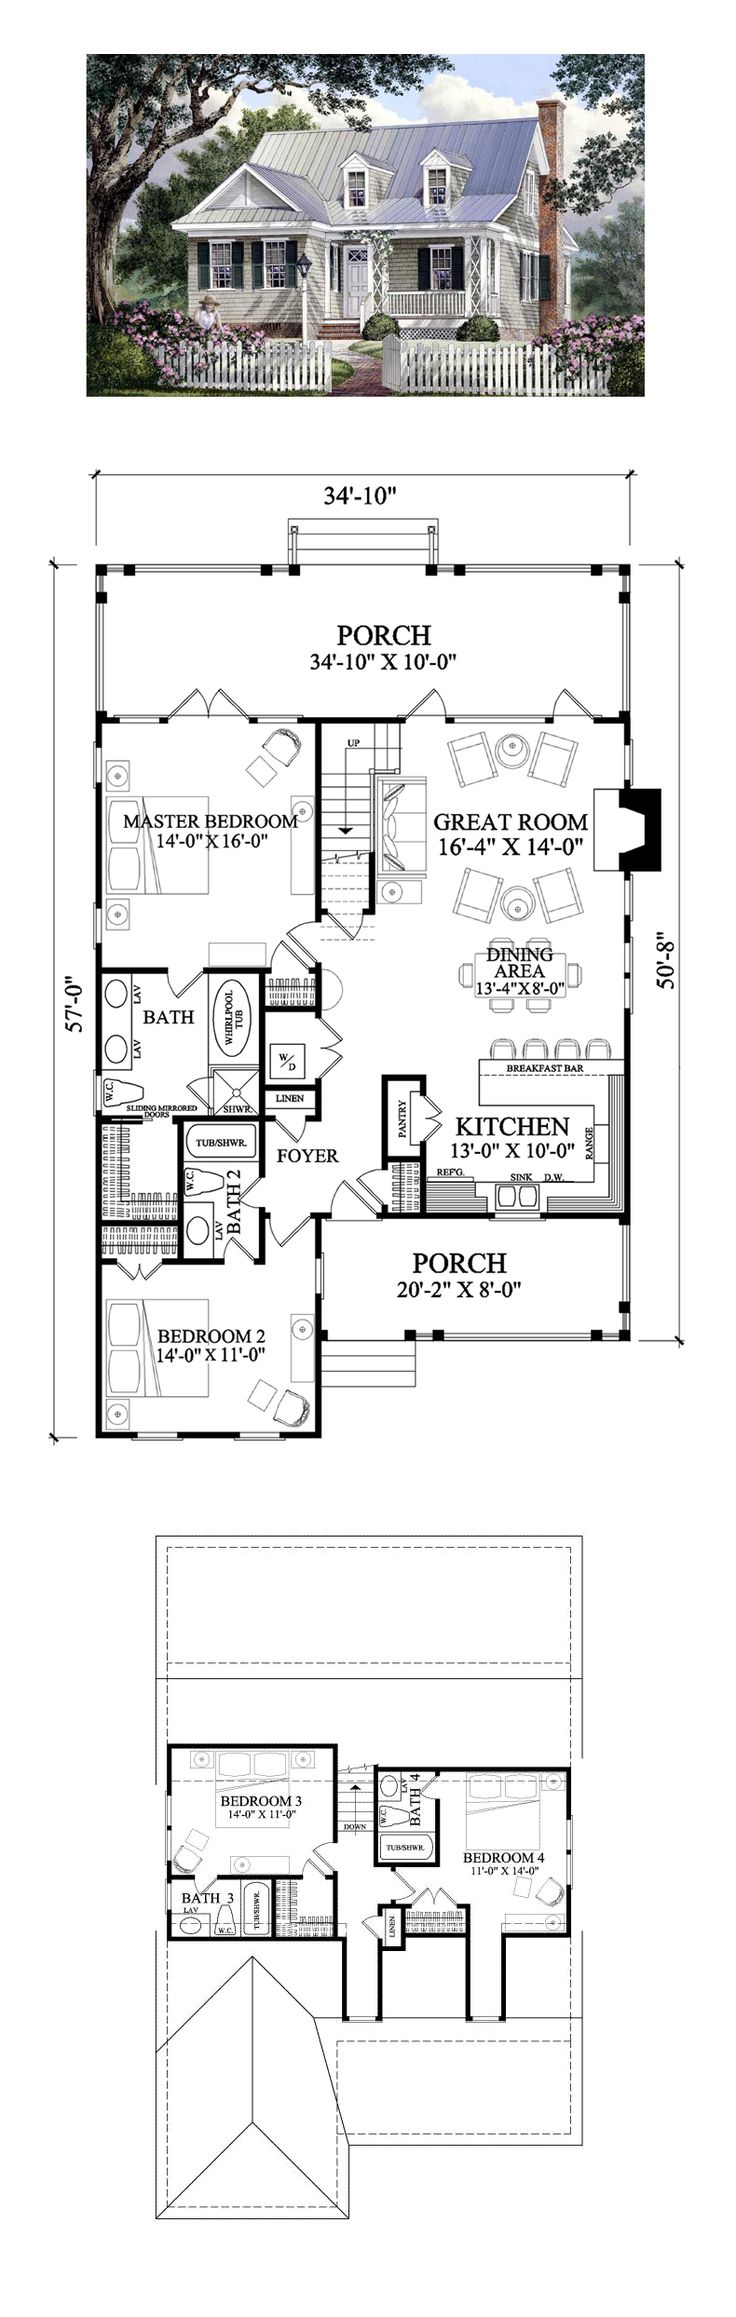 25 best ideas about cape cod cottage on pinterest cape for Cape cod floor plans